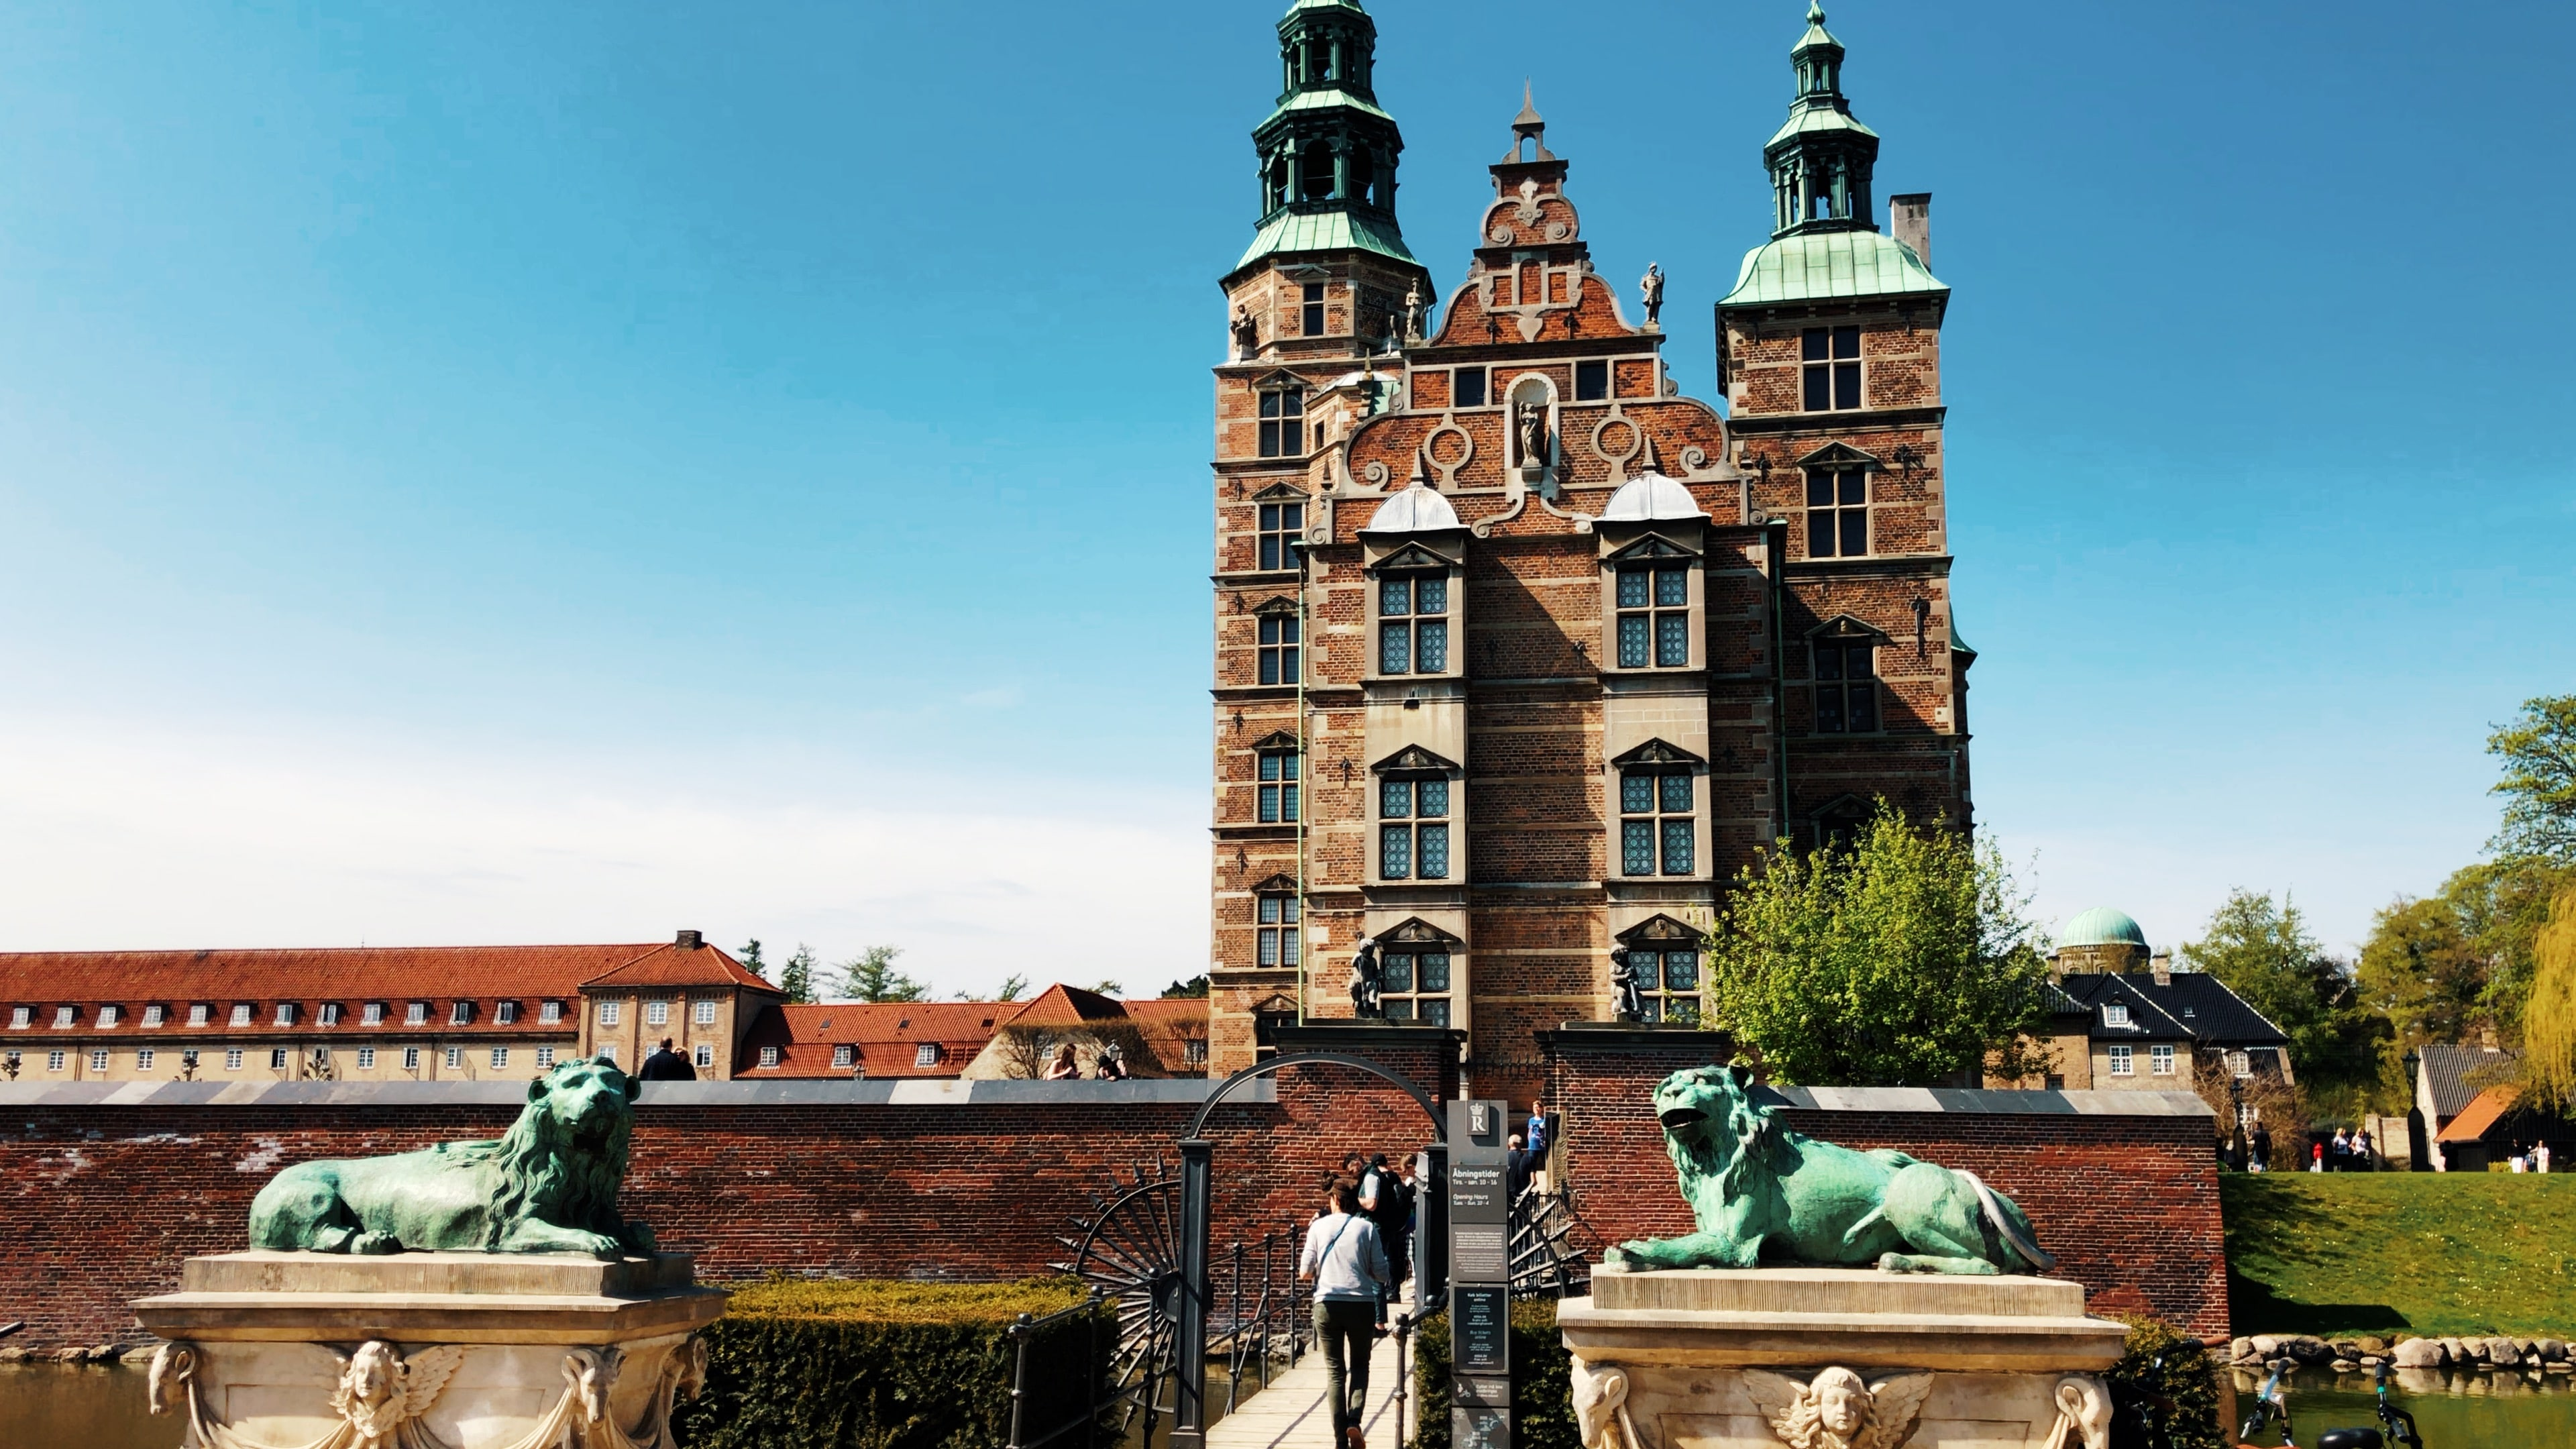 Copenhague - Rosenborg Slot